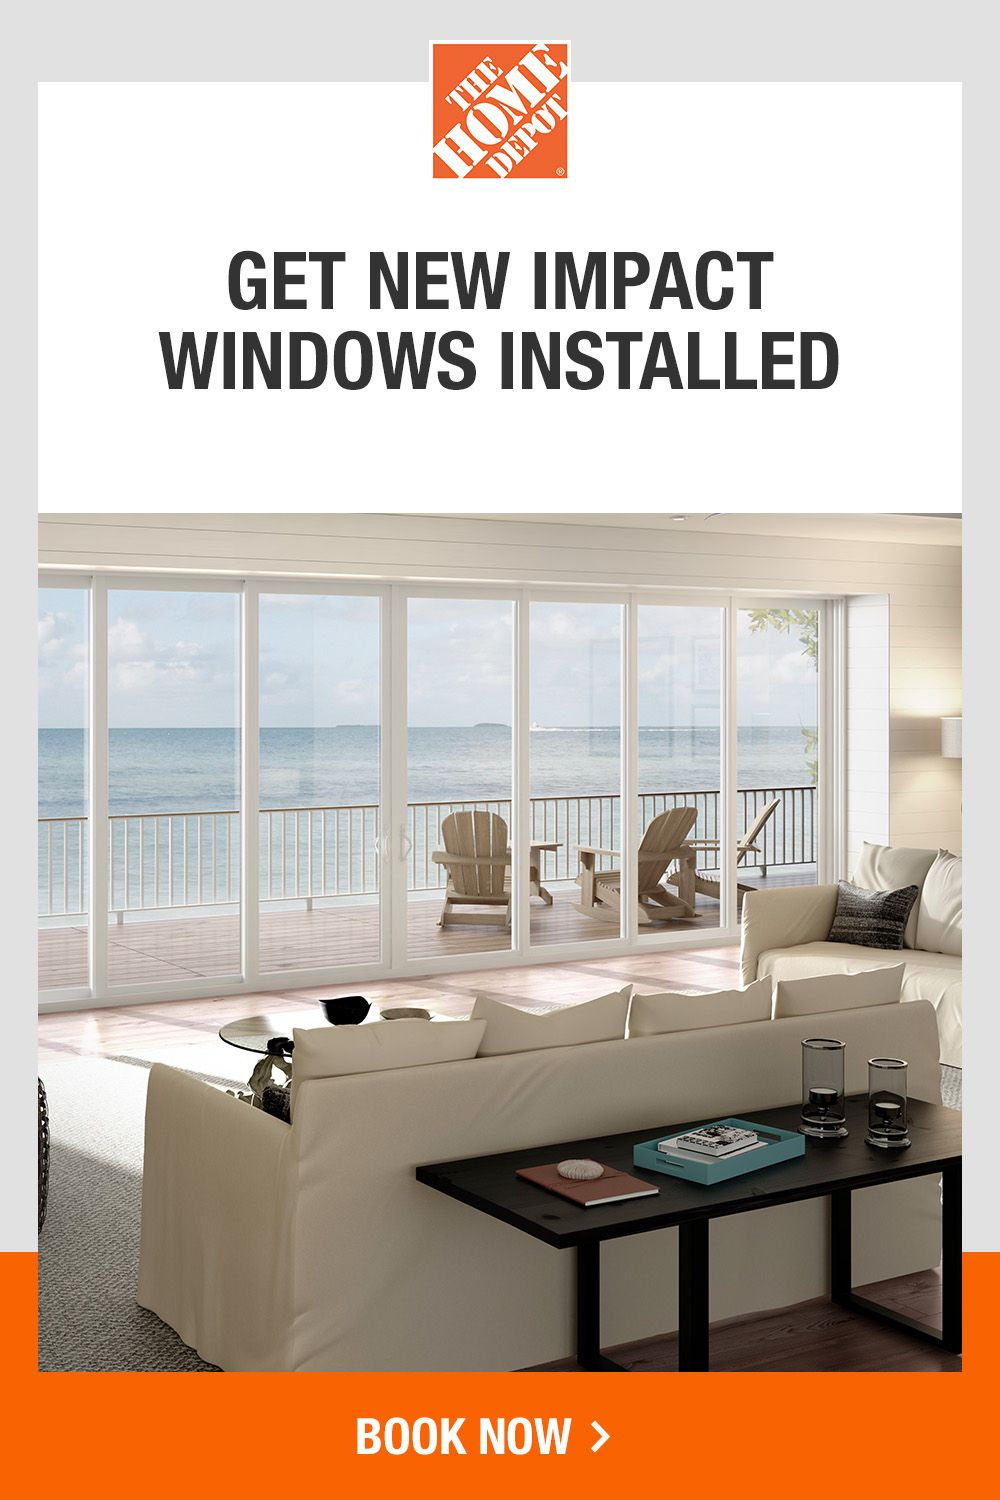 Save On Impact Window Installation From The Home Depot In 2020 Window Installation Impact Windows Home